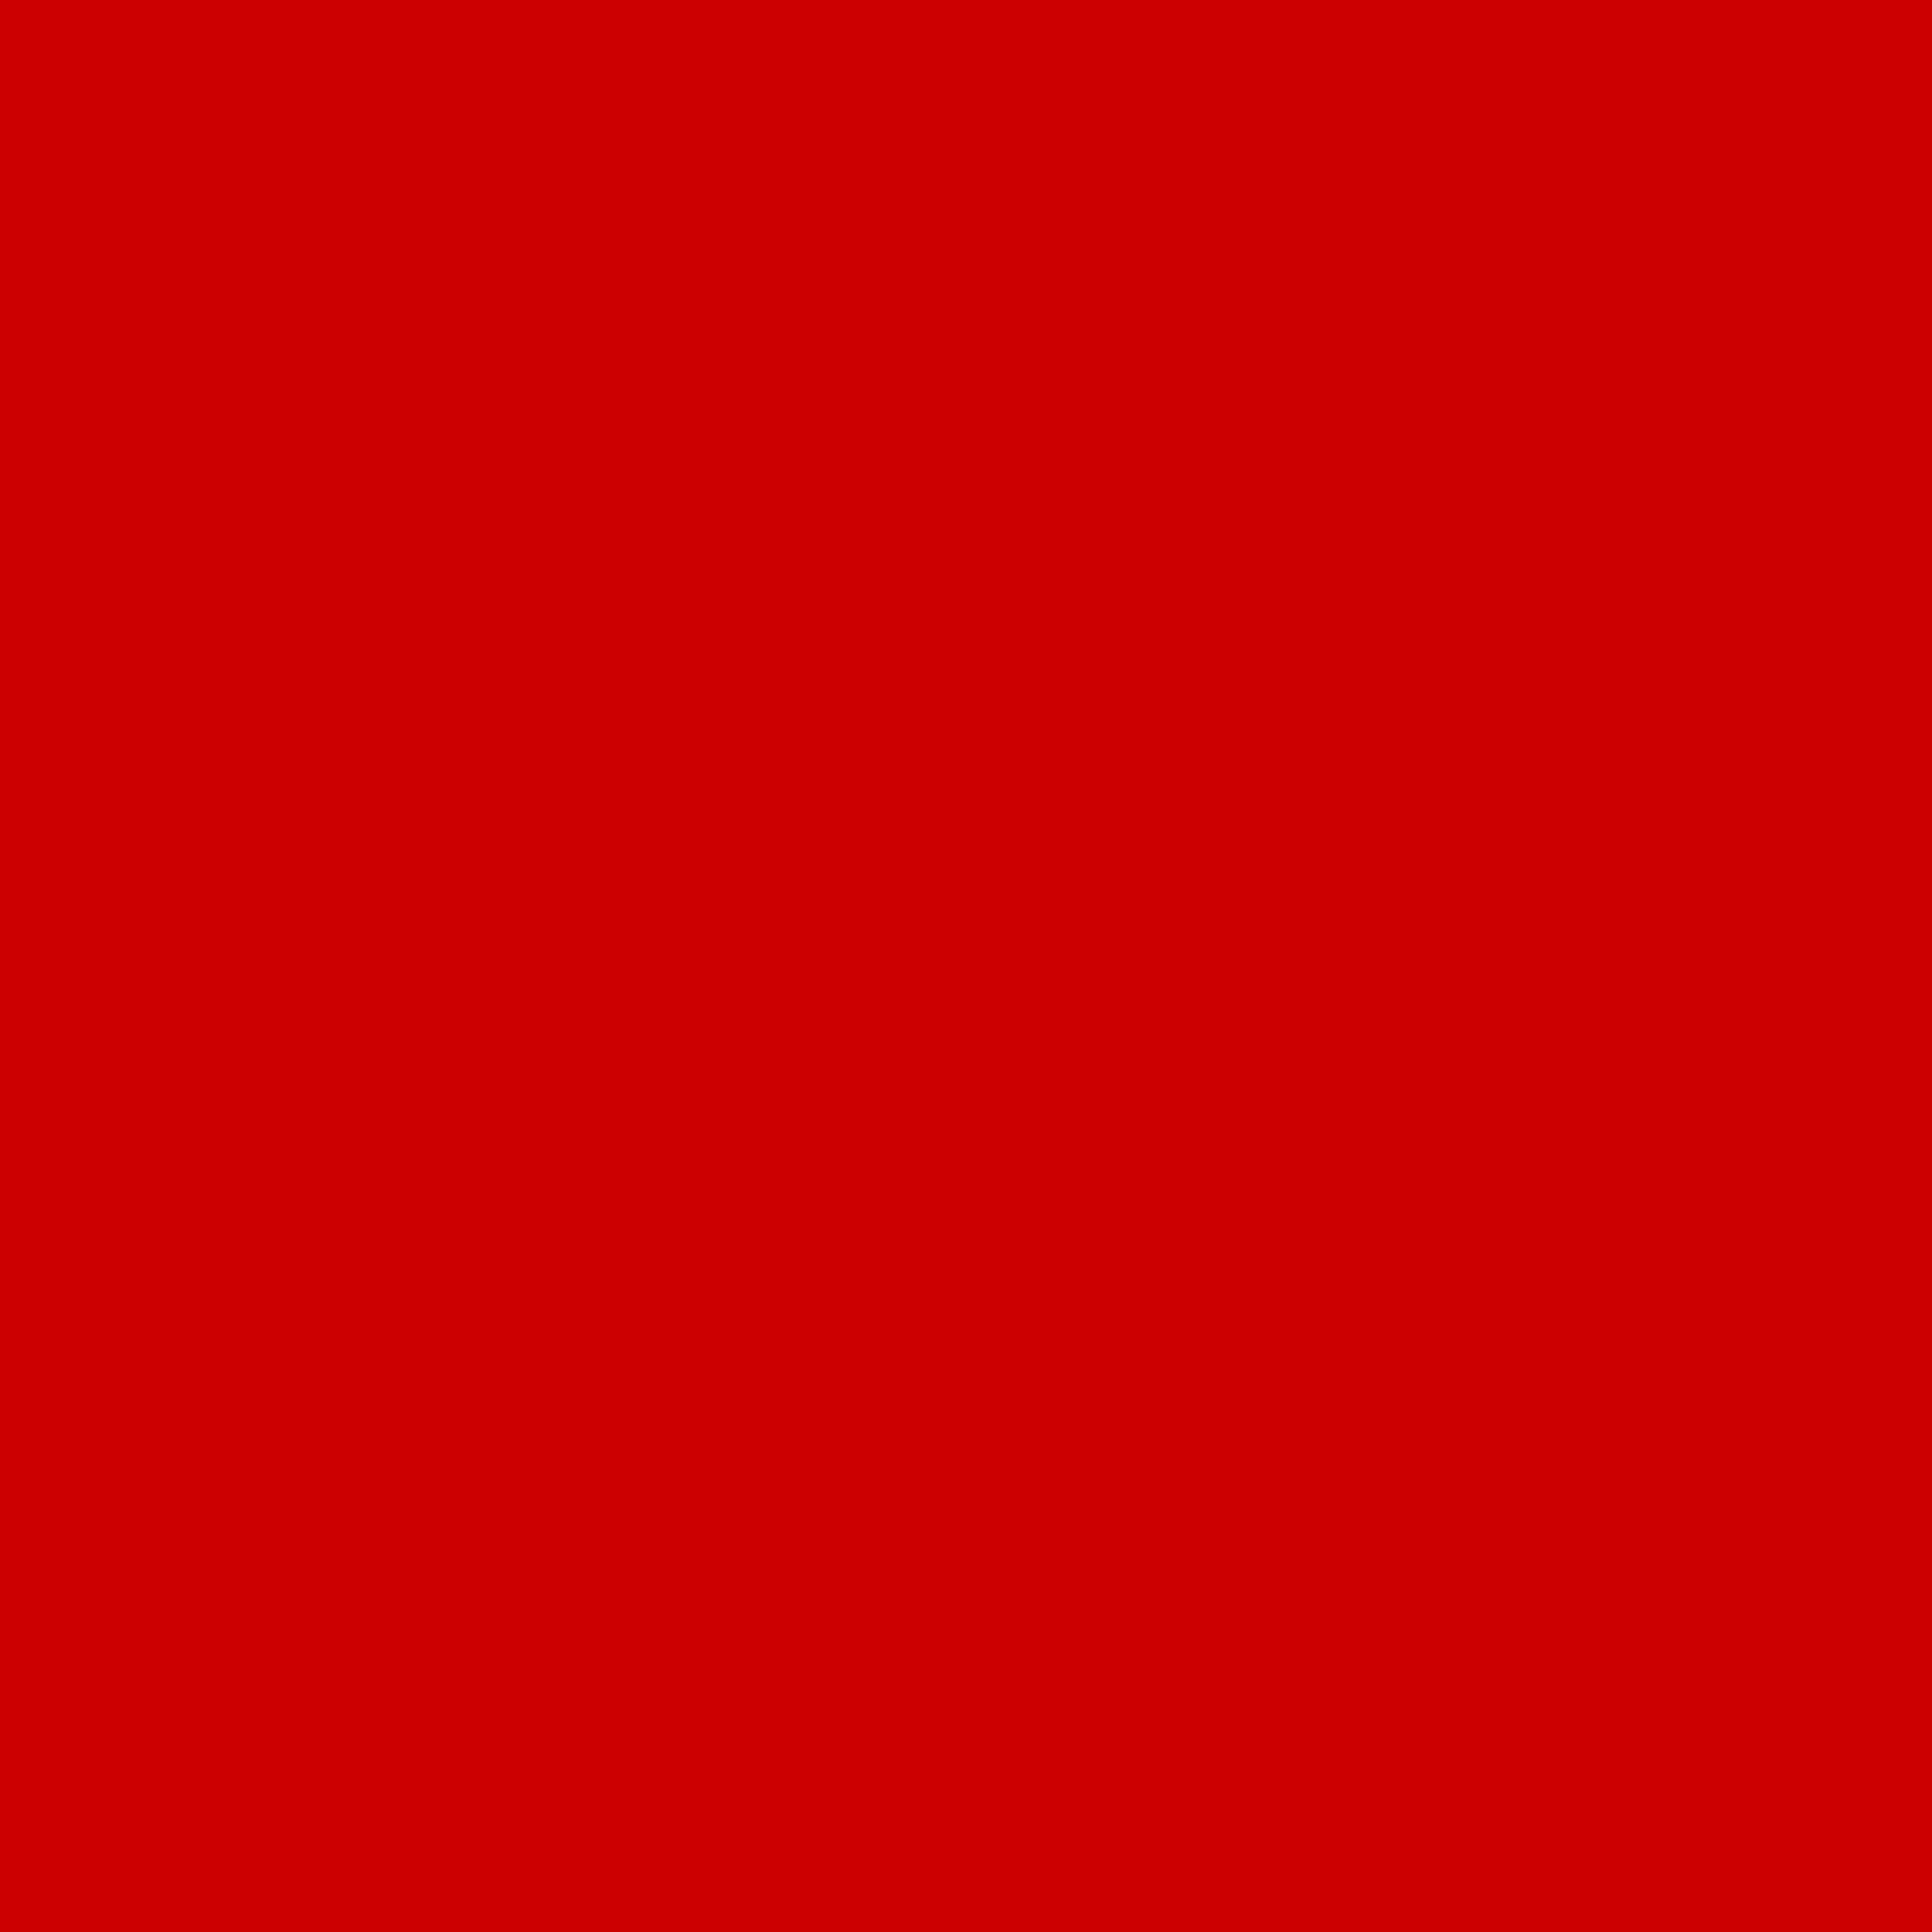 2732x2732 Boston University Red Solid Color Background